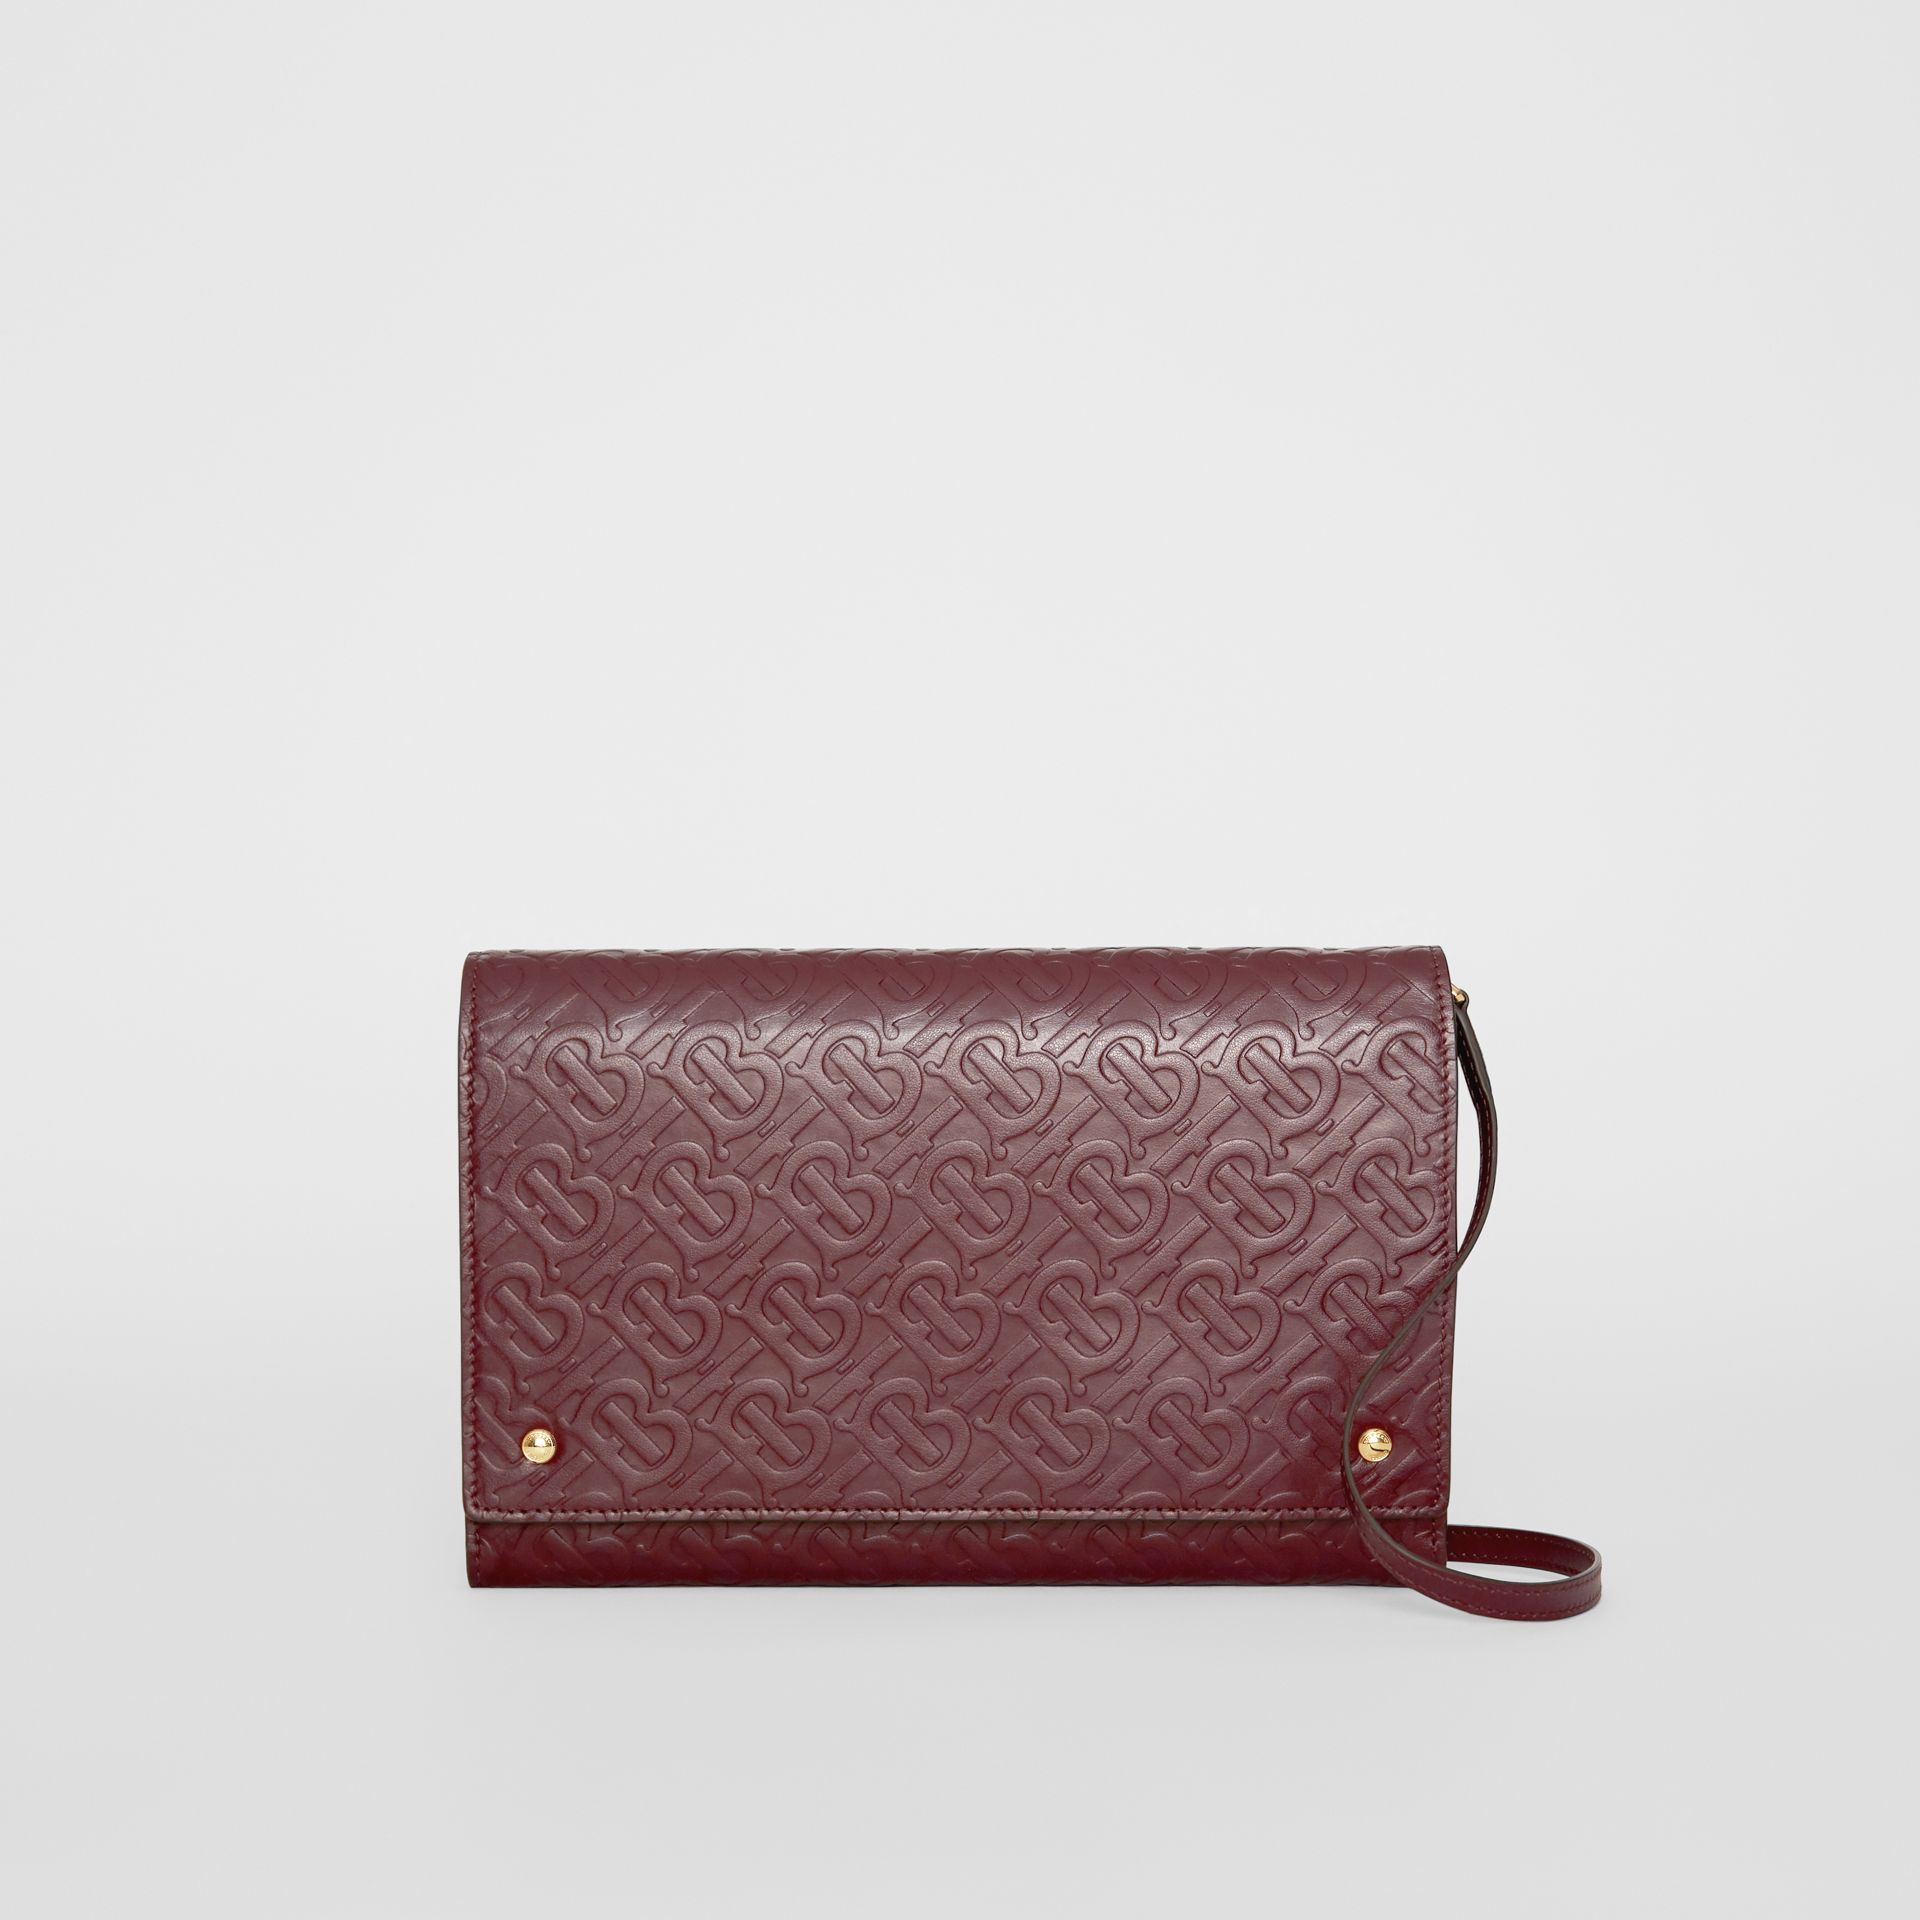 Monogram Leather Bag with Detachable Strap in Oxblood - Women | Burberry United States - gallery image 0